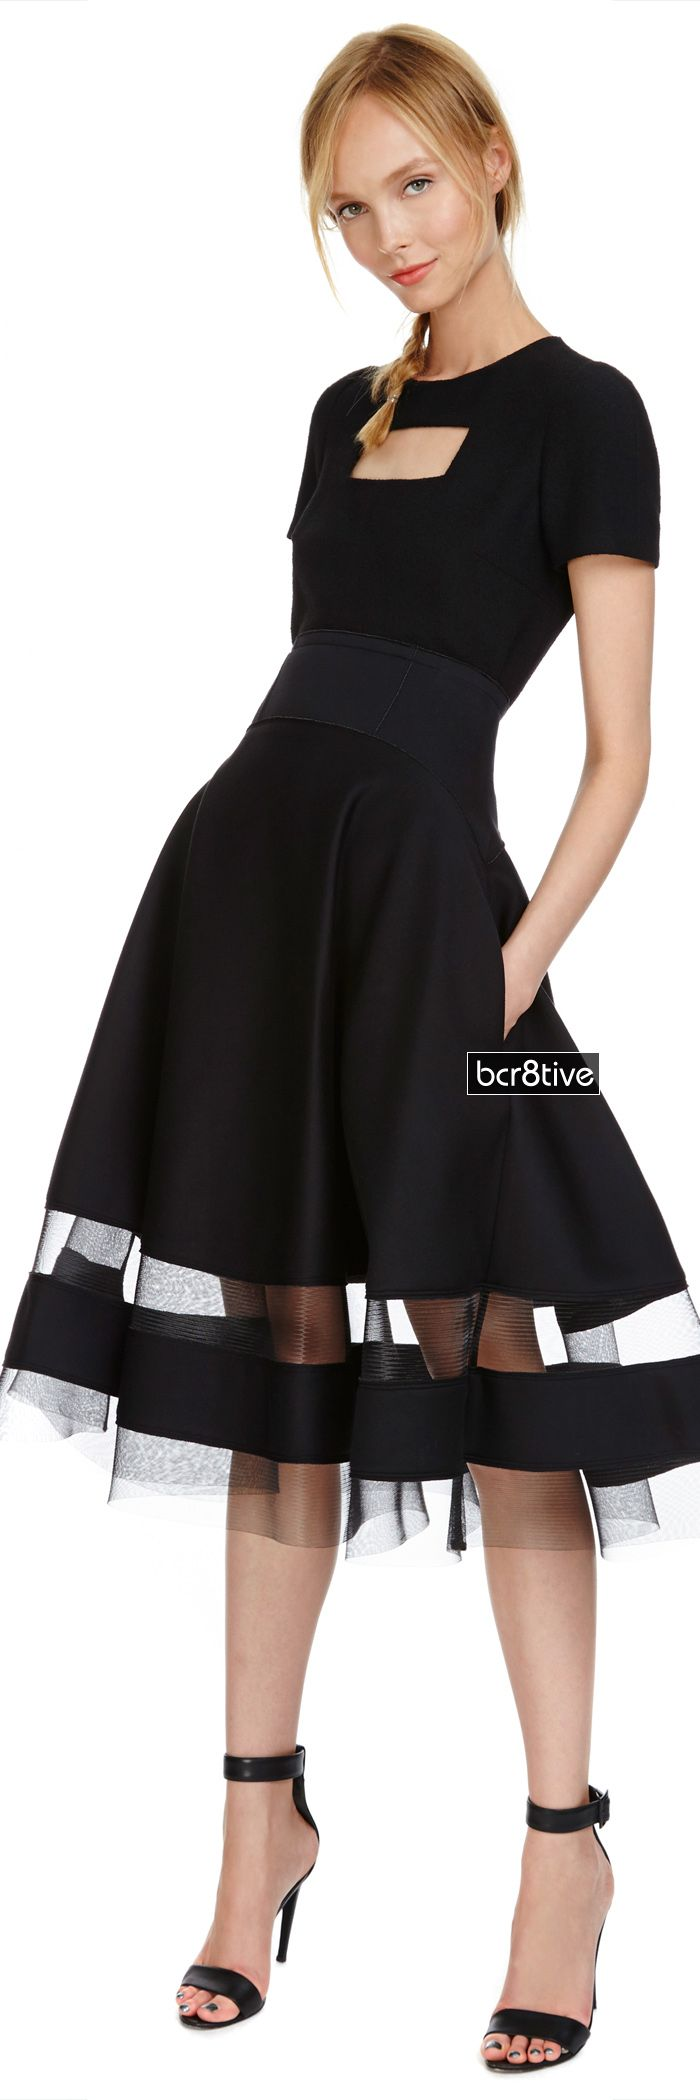 Donna Karan -- Sculpted Bonded Jersey Circle Skirt - Ships Now from Moda